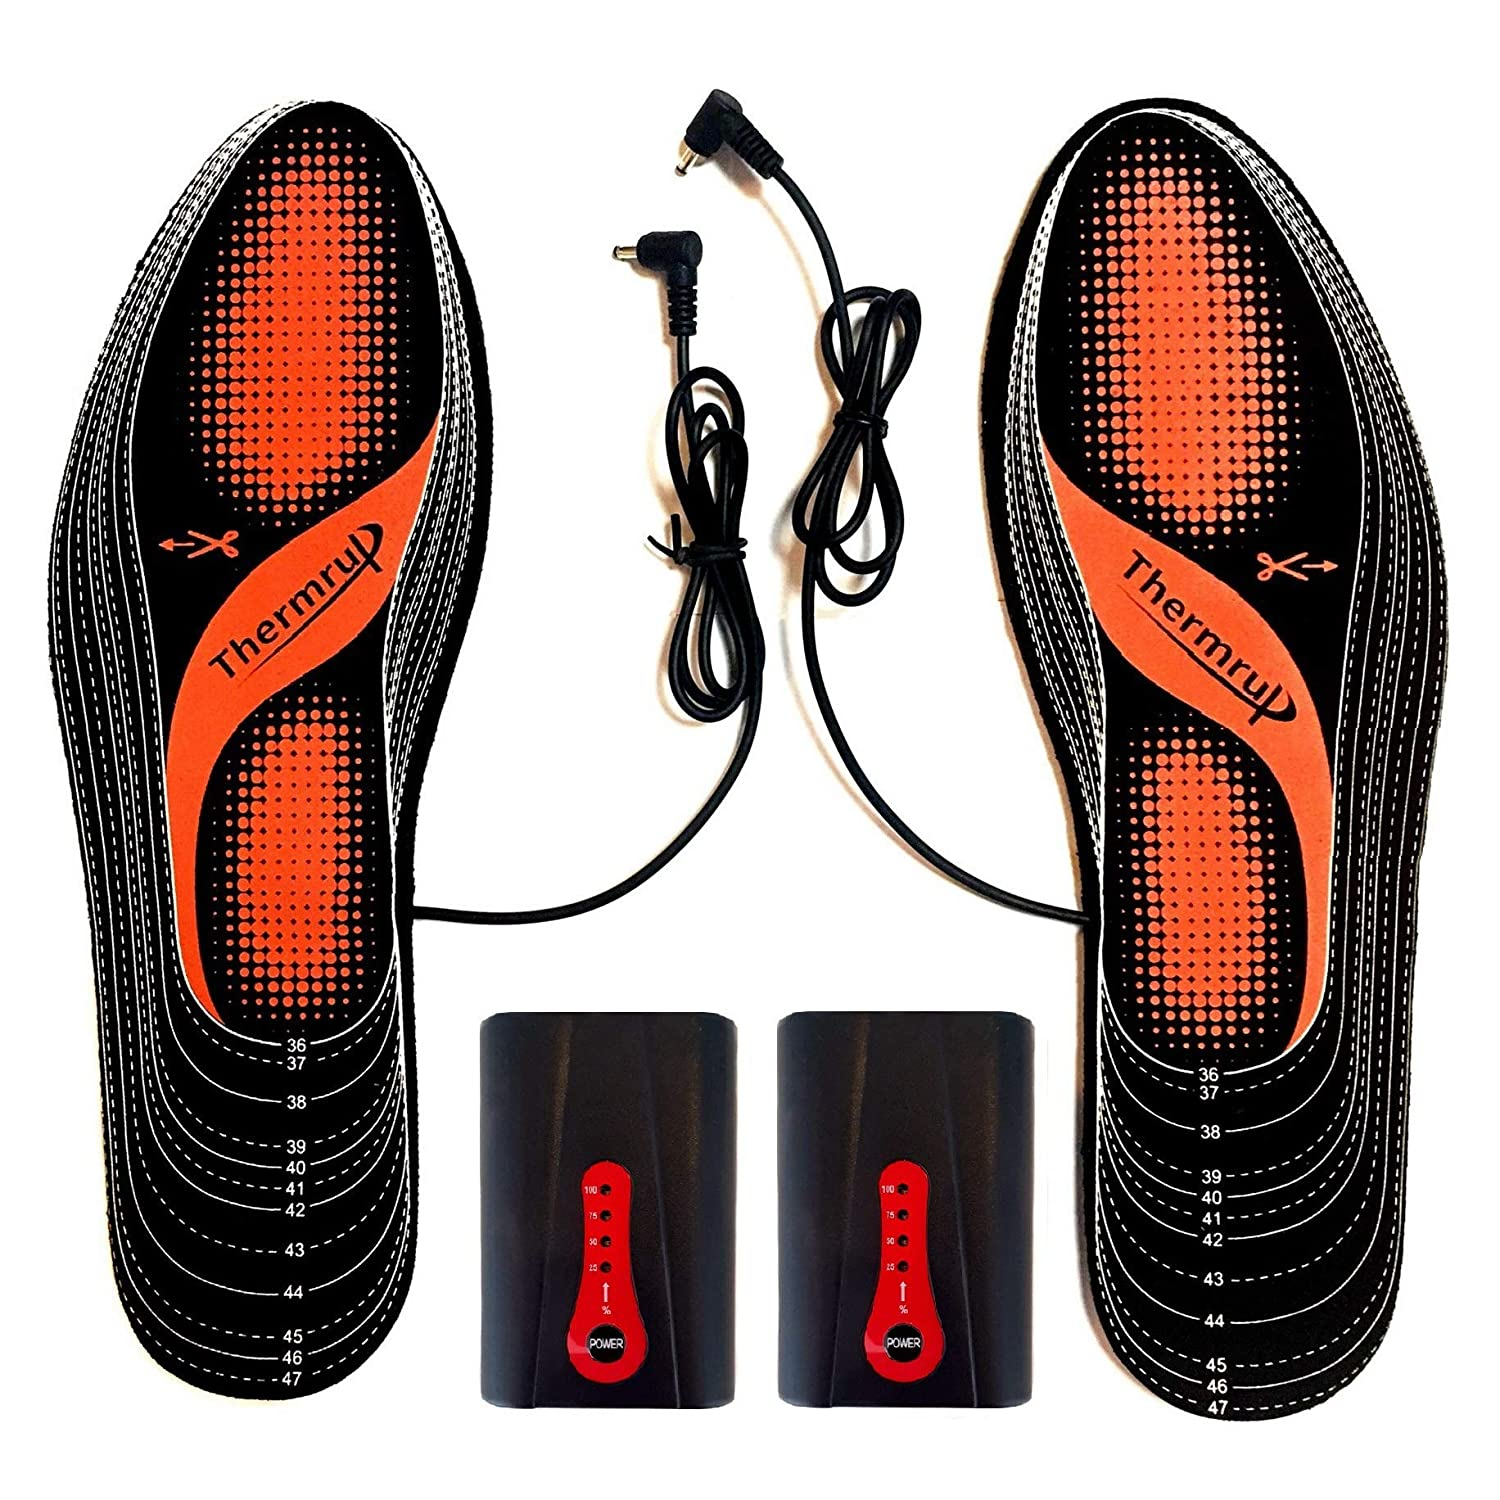 Thermrup Electric Heated Insole Foot Warmers Rechargeable Li-Ion Battery(4 Temperature Settings) Size 4.5-14, High Temperature